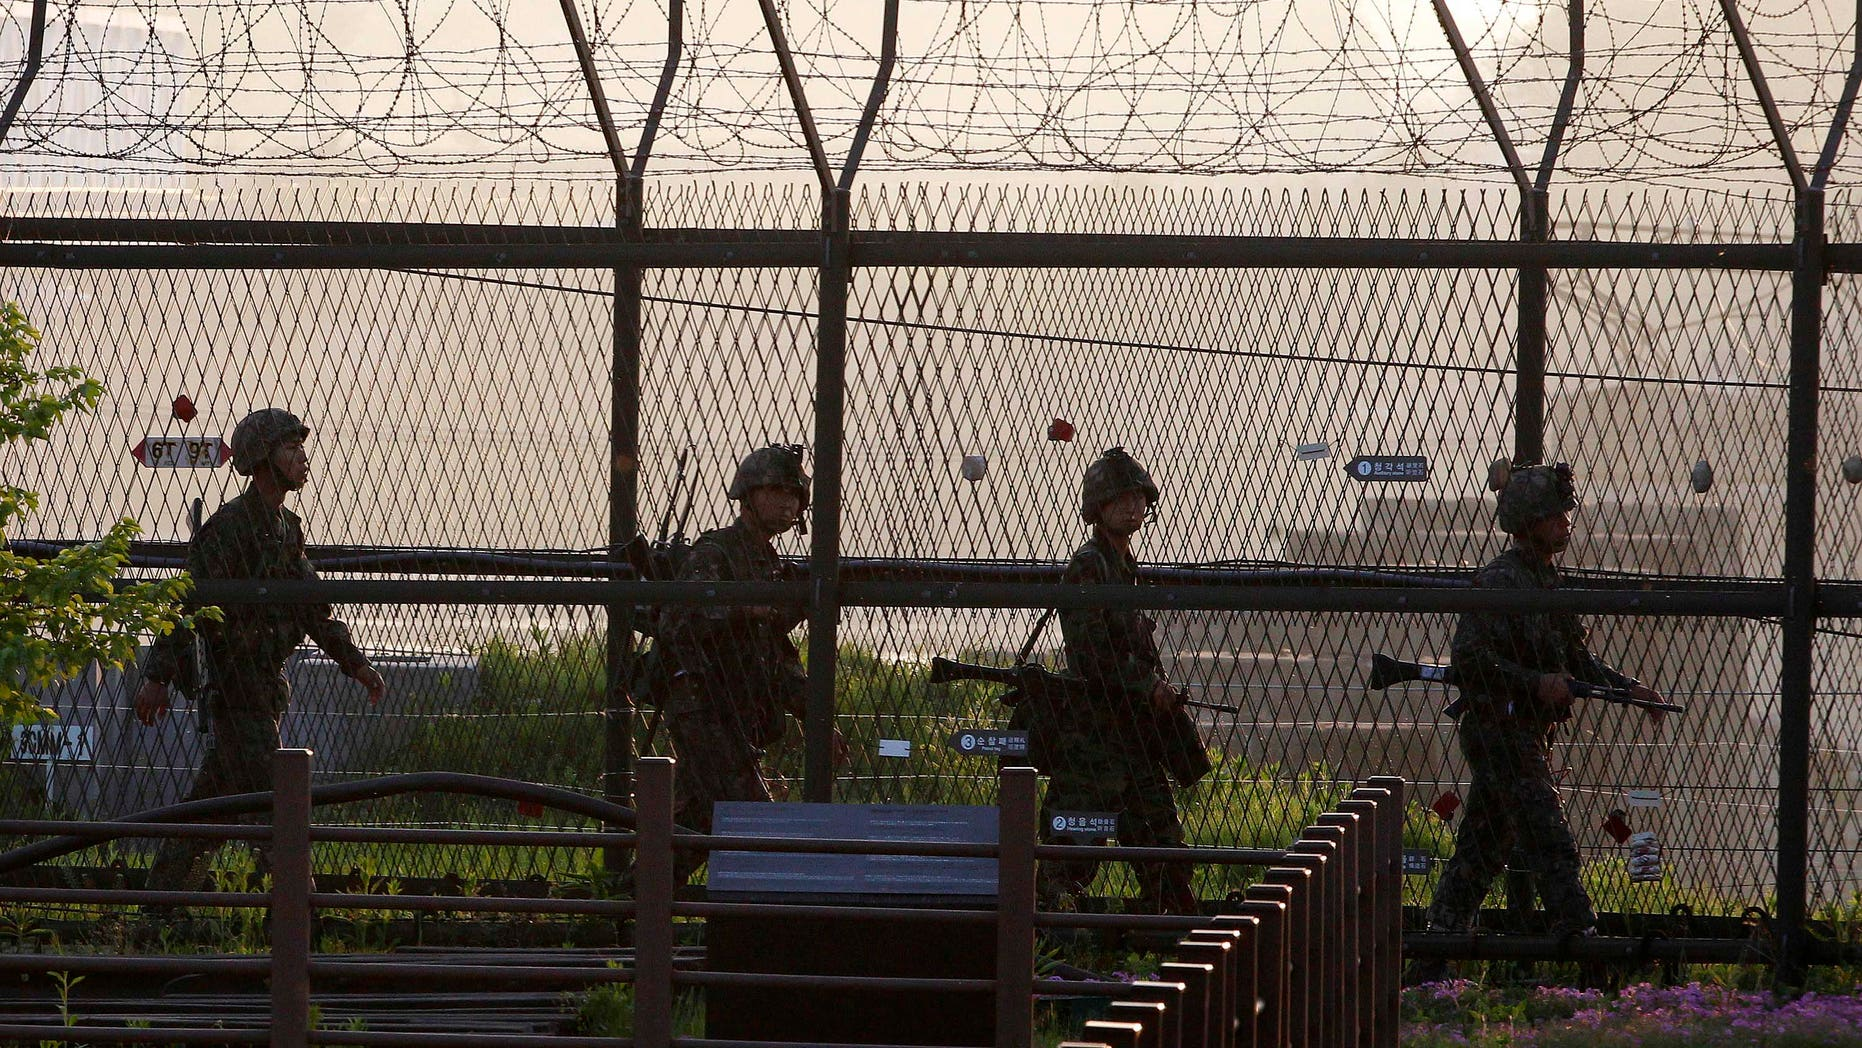 South Korean Army soldiers patrol along a barbed-wire fence near the border village of the Panmunjom in Paju, South Korea, Monday, May 20, 2103. North Korea fired short-range projectiles into its own eastern waters Monday for a third straight day, Seoul officials said. The North said it was bolstering deterrence against enemy attack. (AP Photo/Ahn Young-joon)